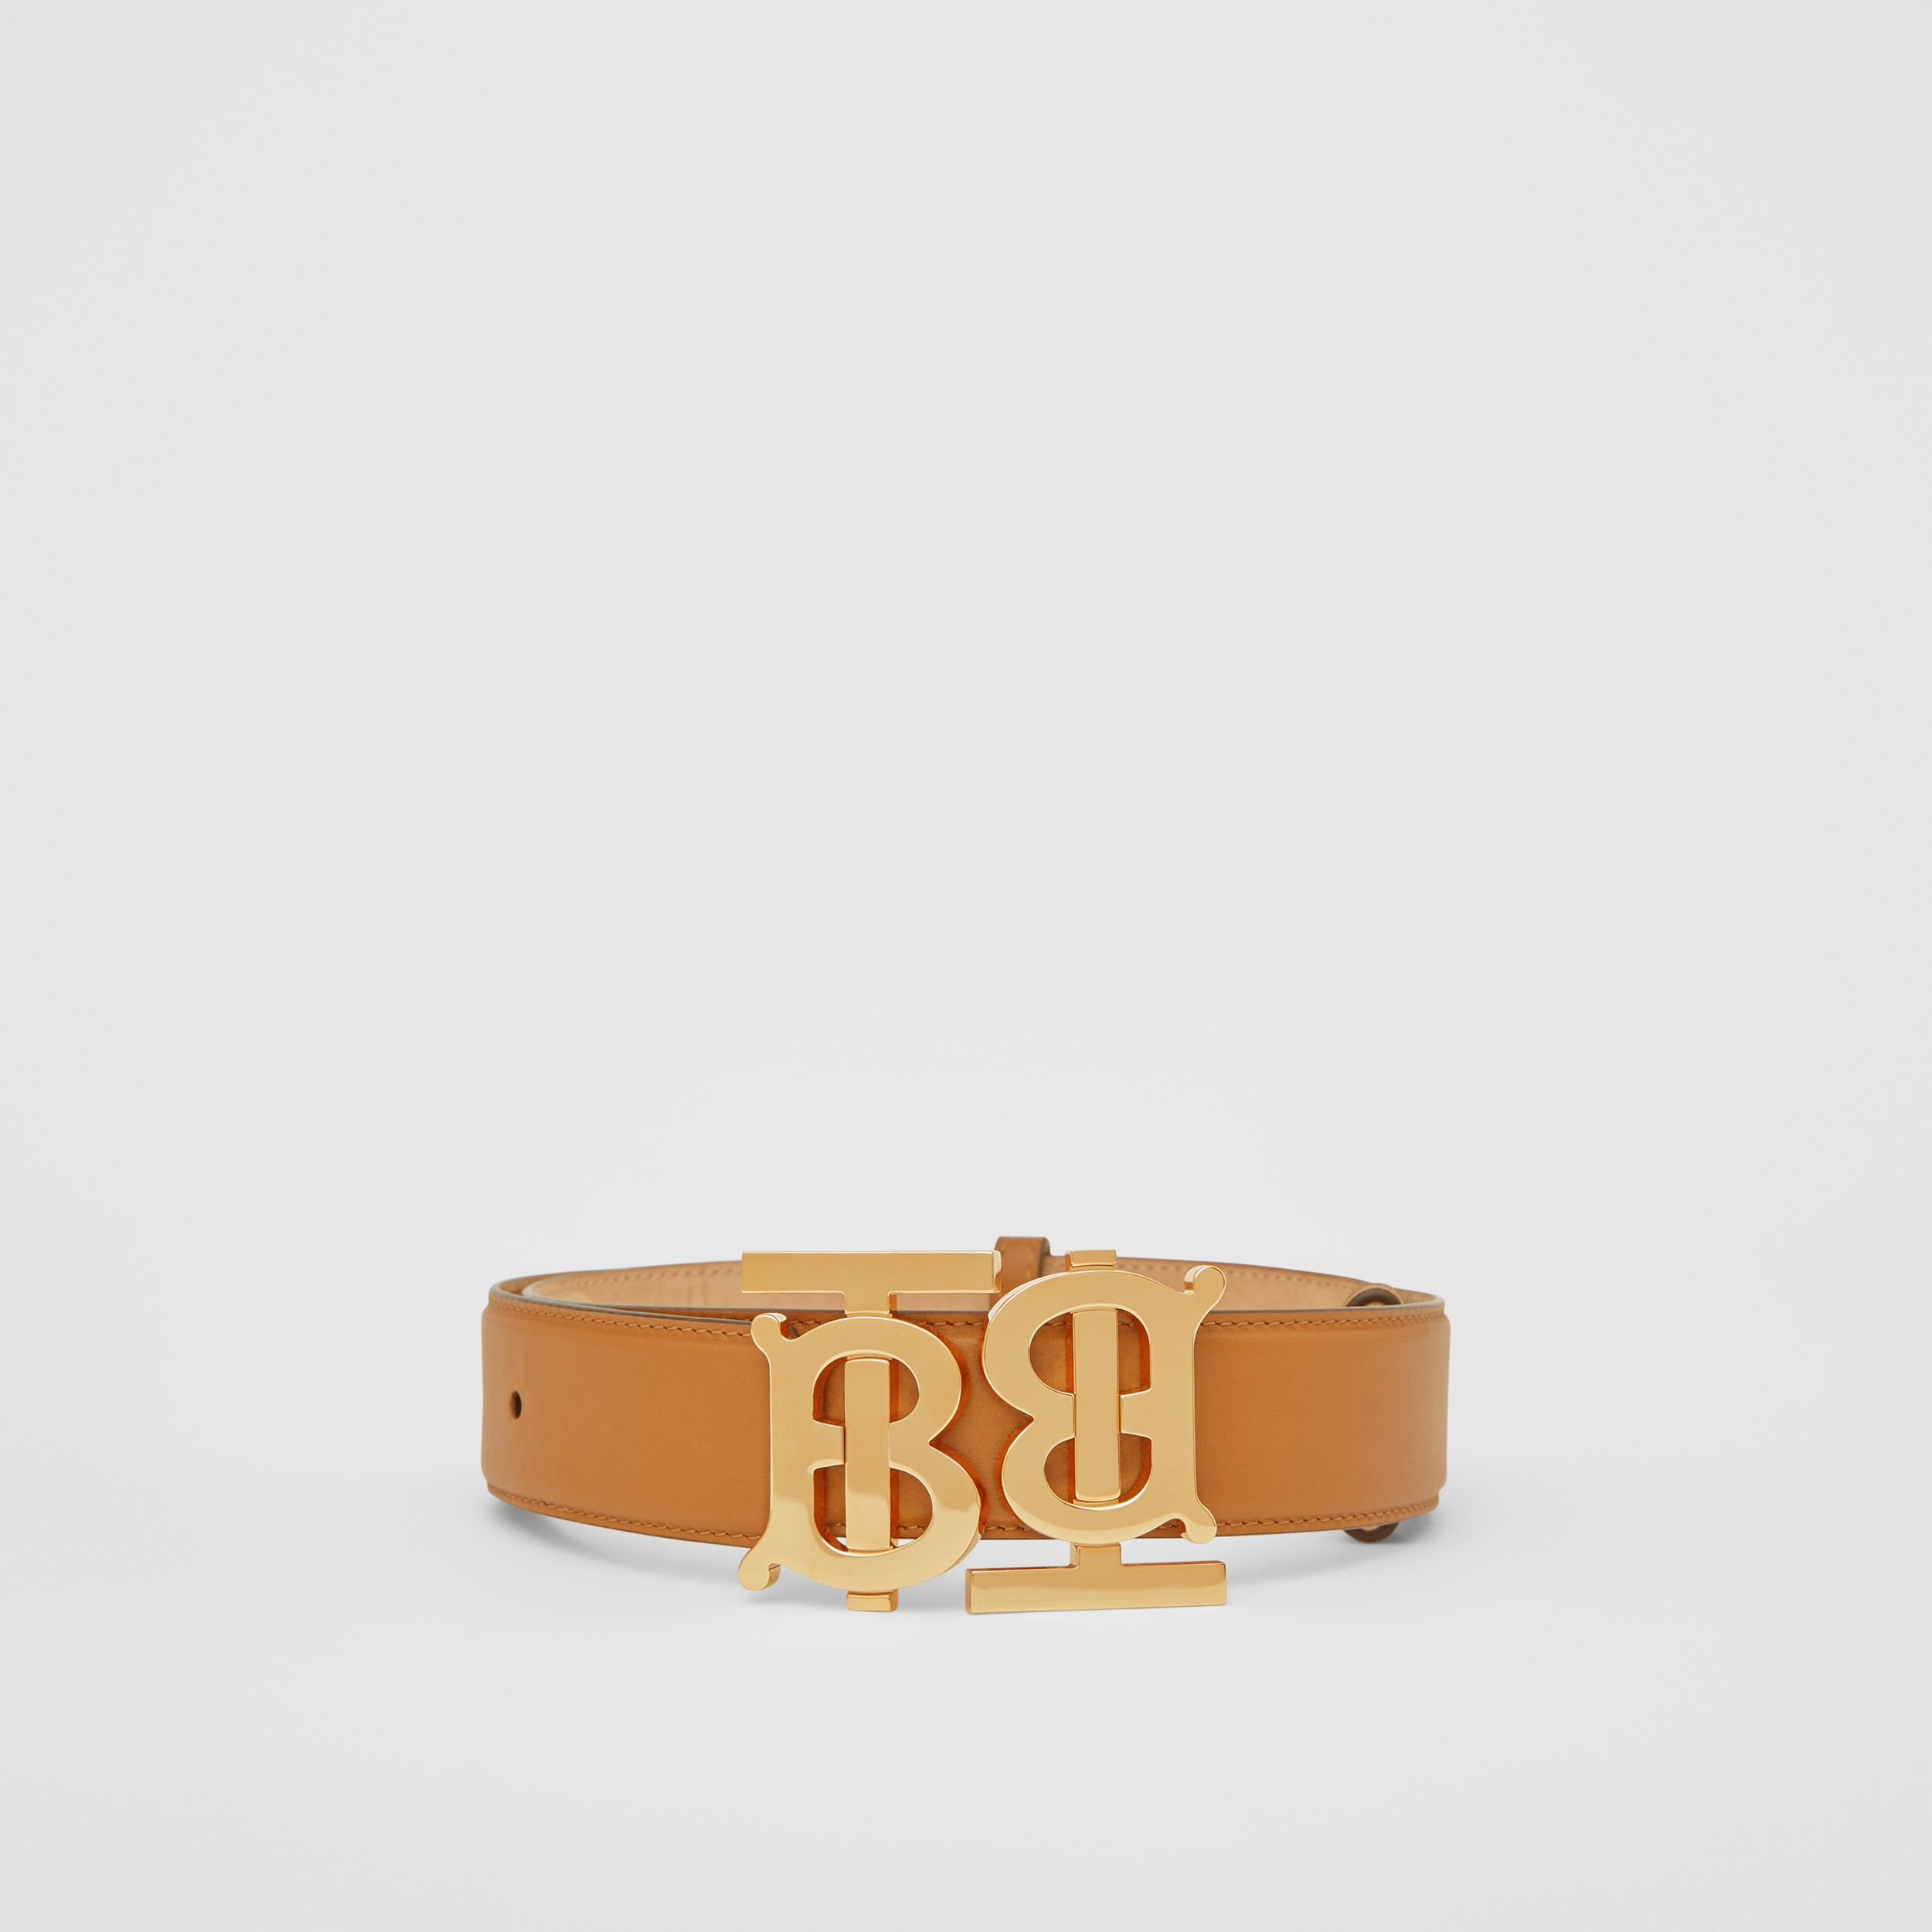 Double Monogram Motif Leather Belt in Warm Tan - Women | Burberry Australia - 4